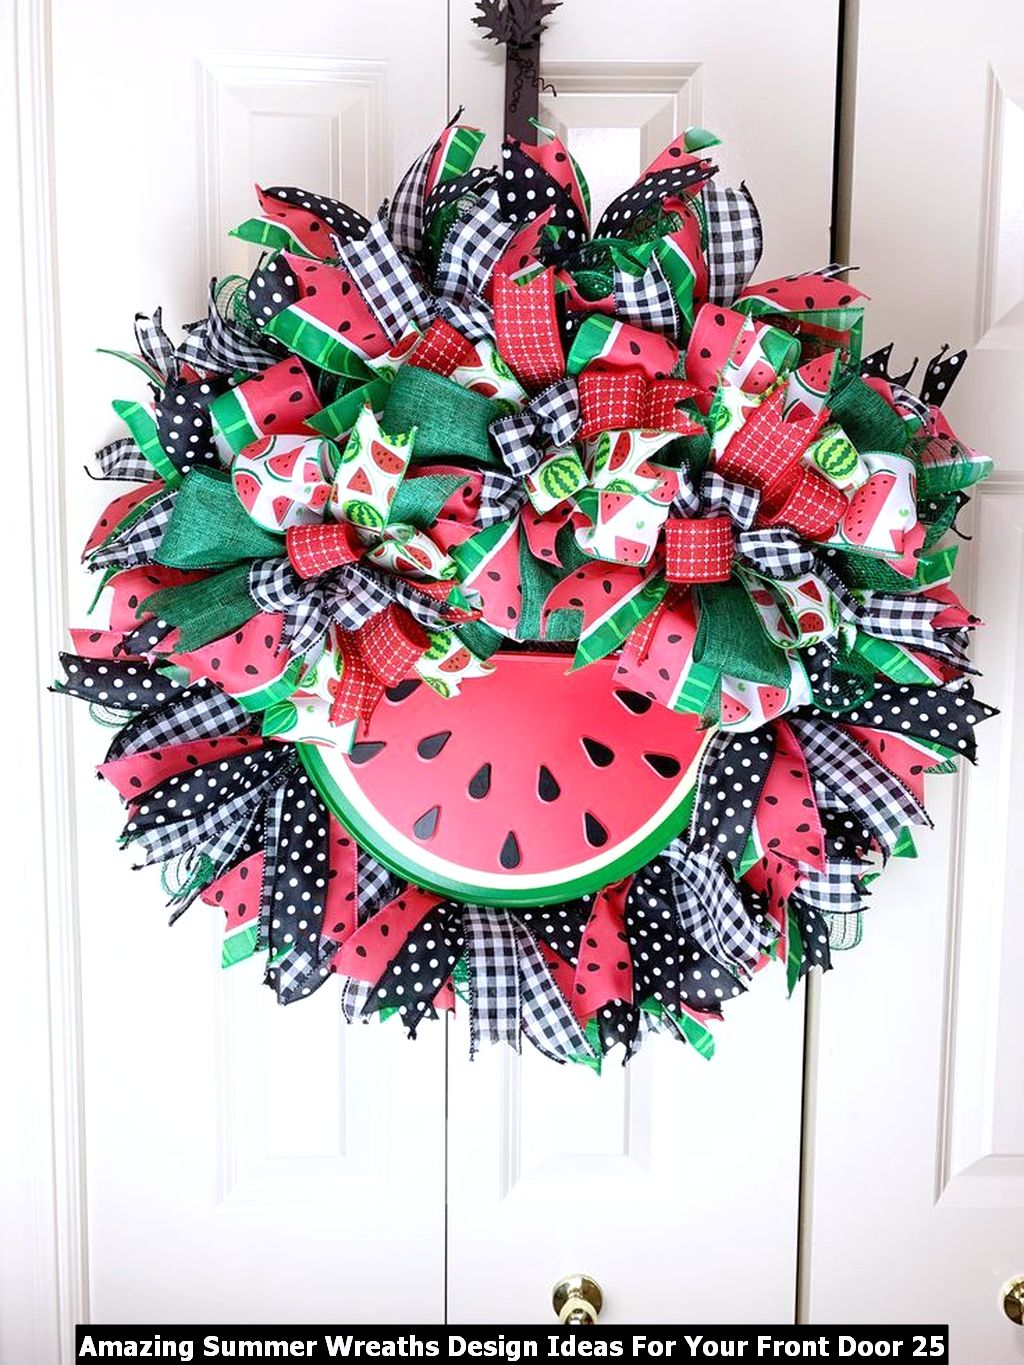 Amazing Summer Wreaths Design Ideas For Your Front Door 25